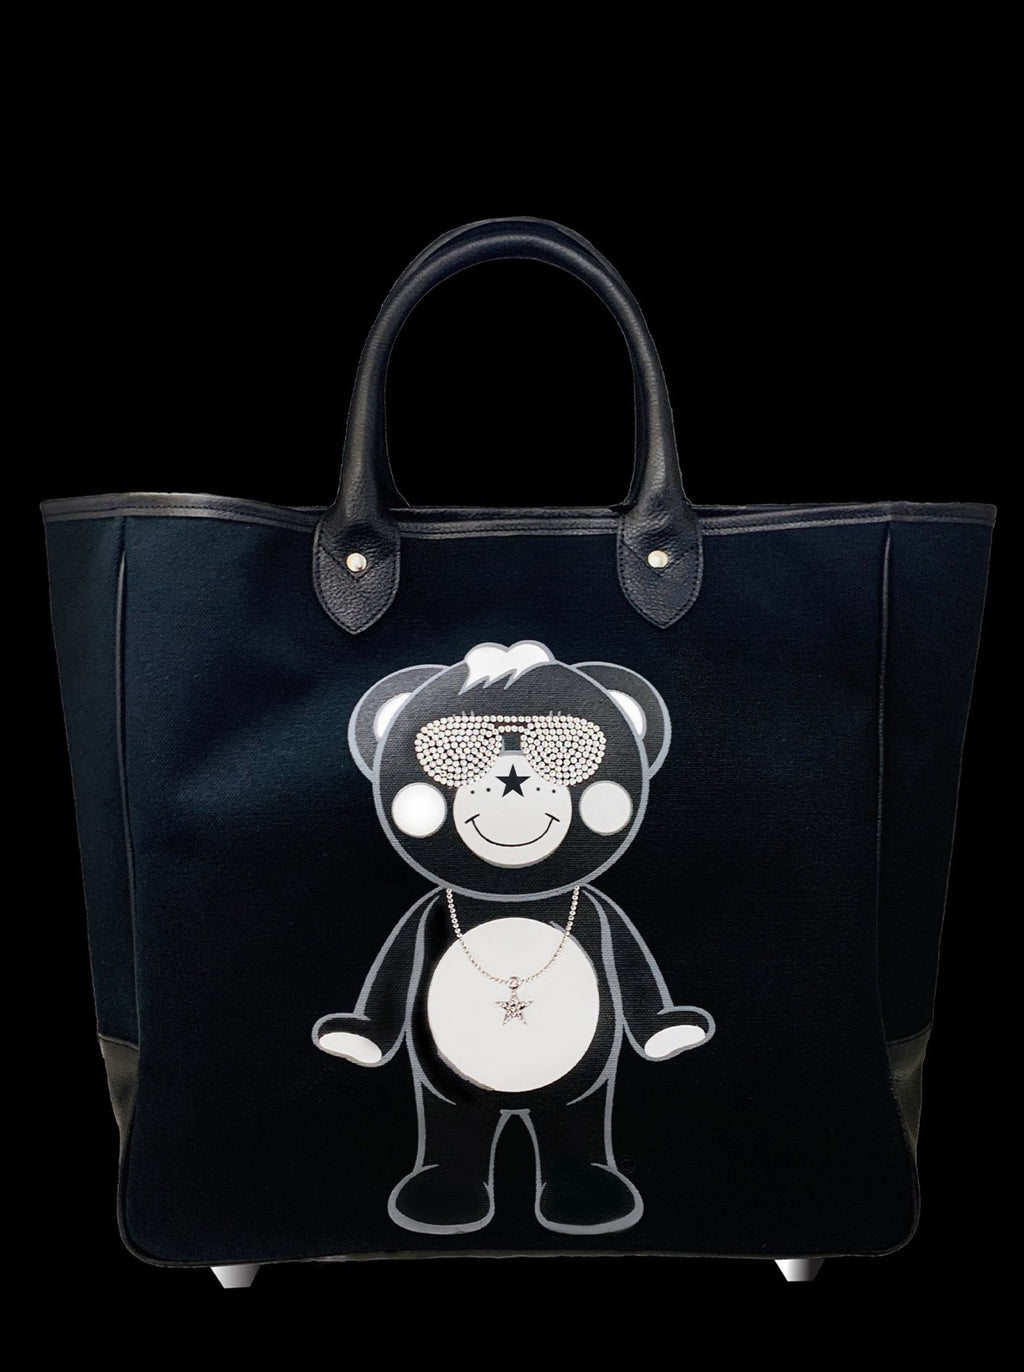 SWAROVSKI® Chappy Tote Bag